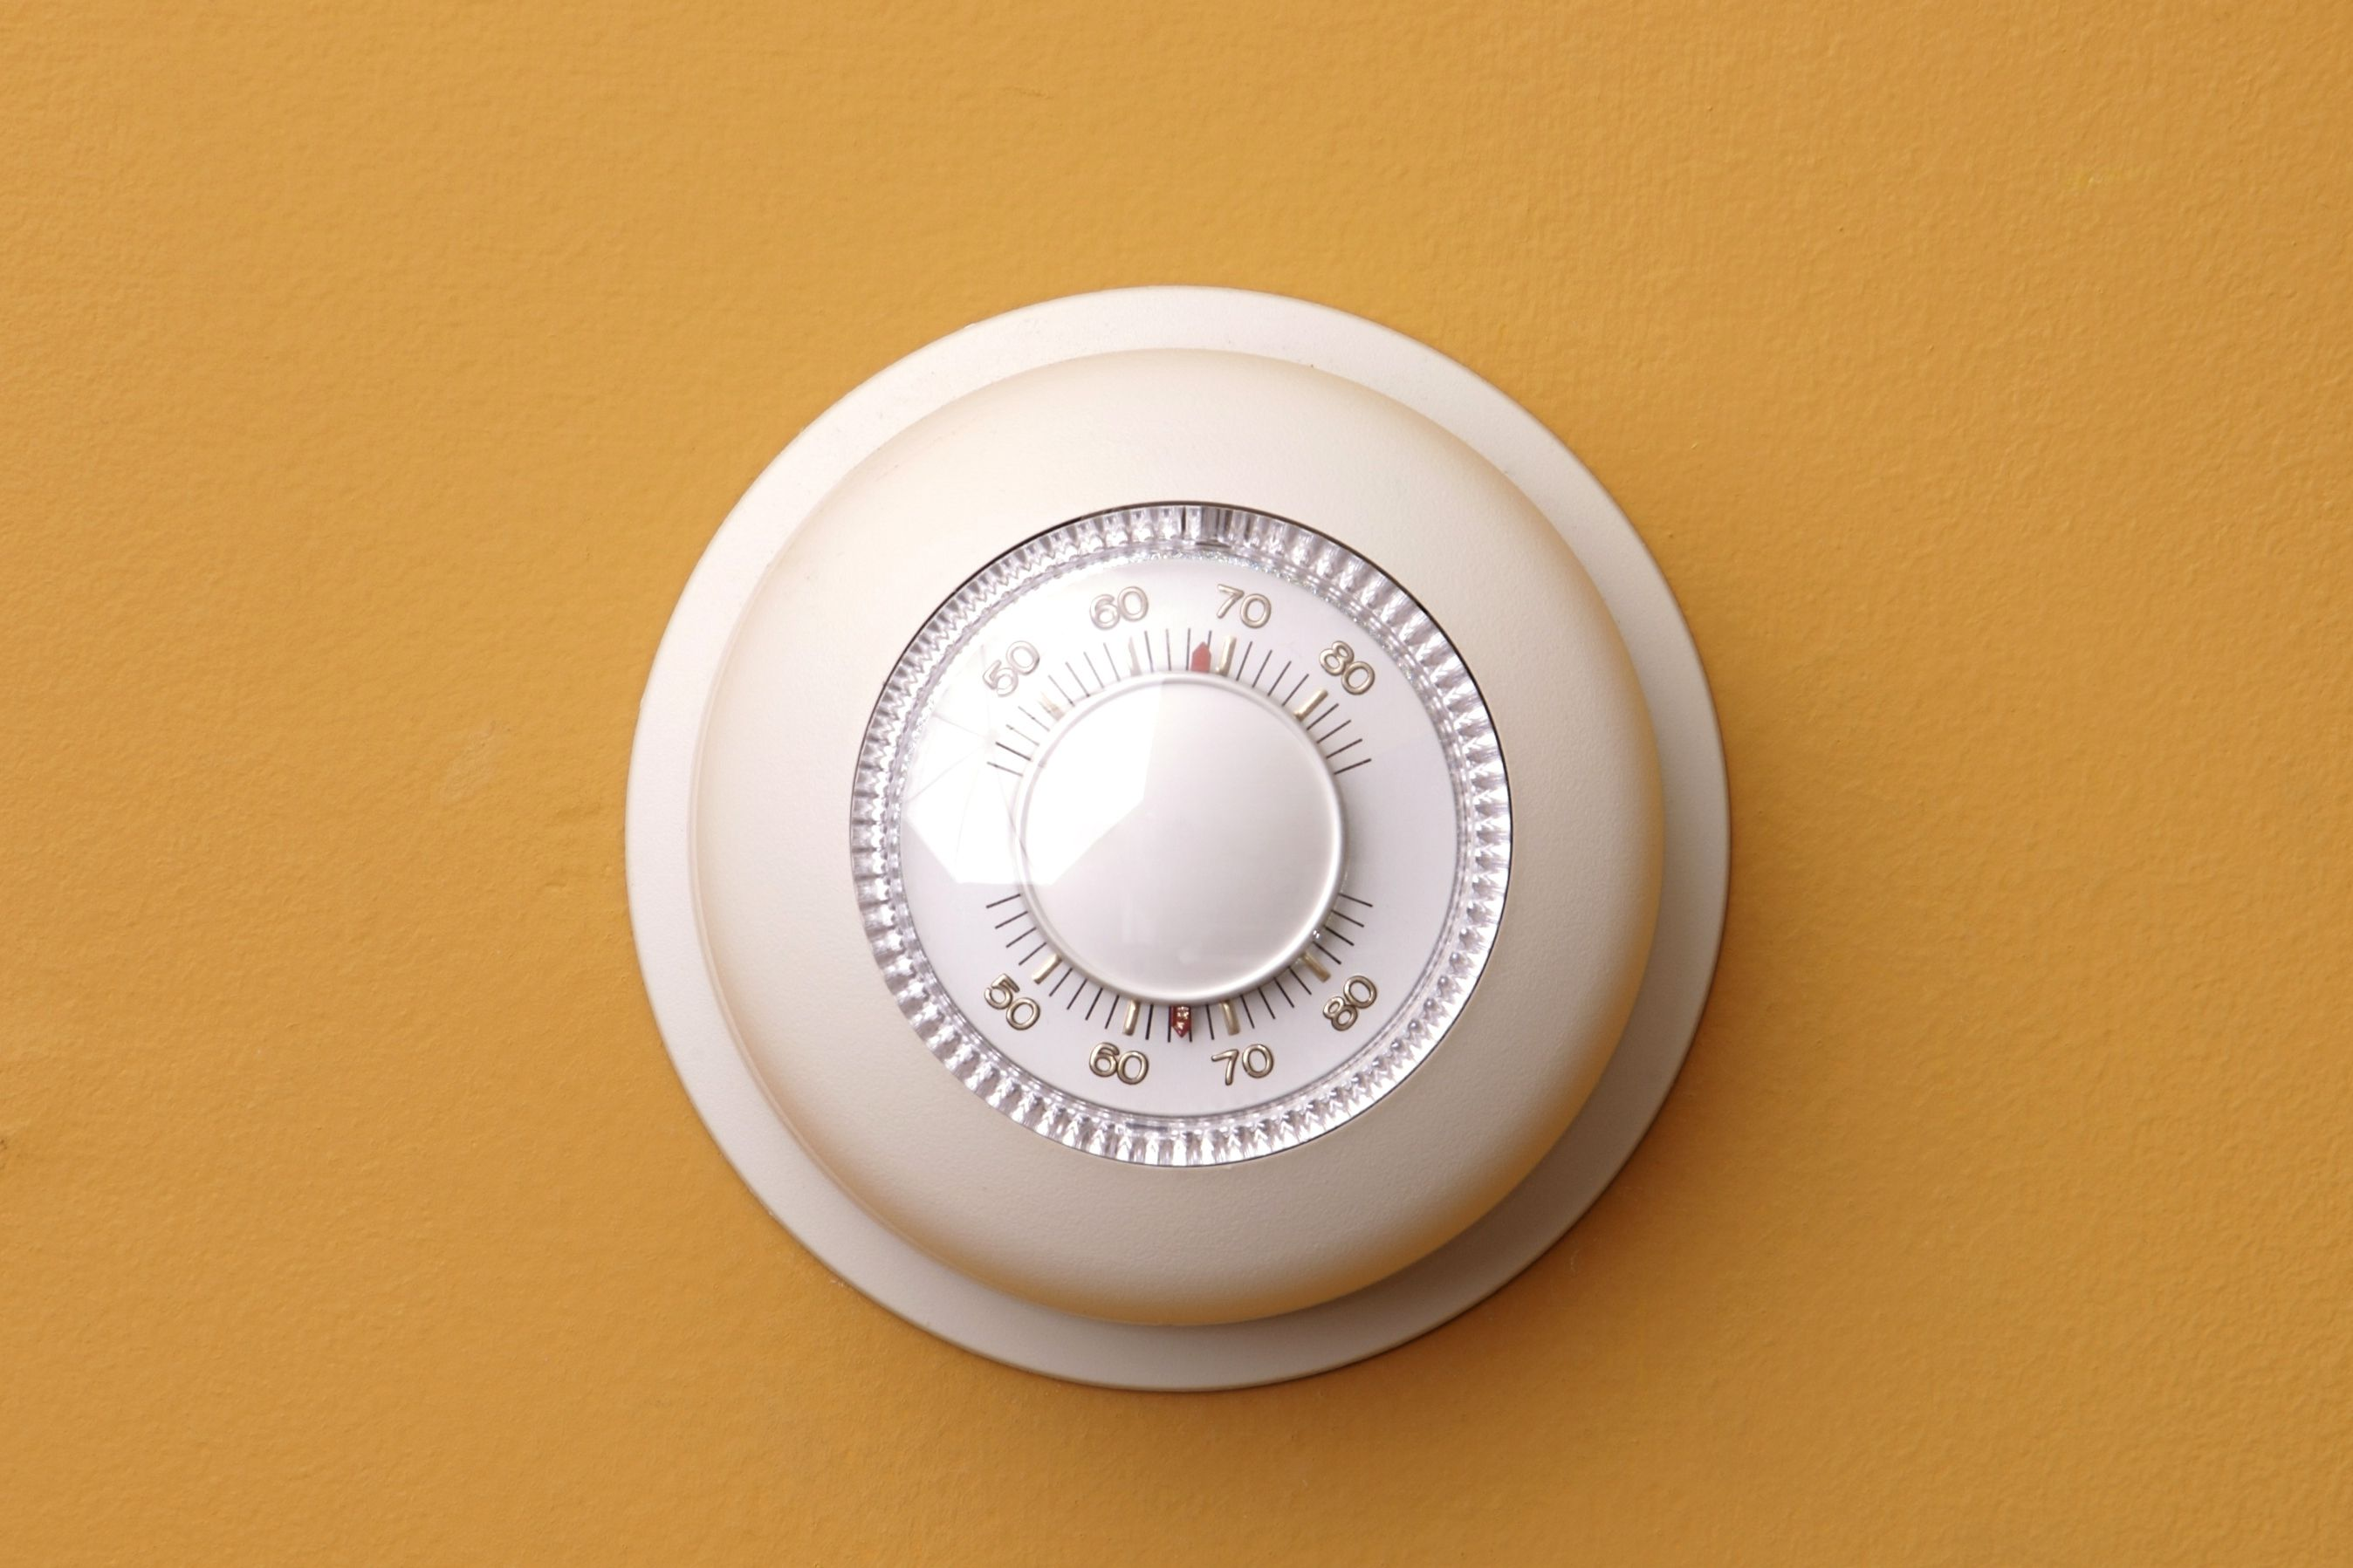 Fix Furnace Problems Caused By Thermostats